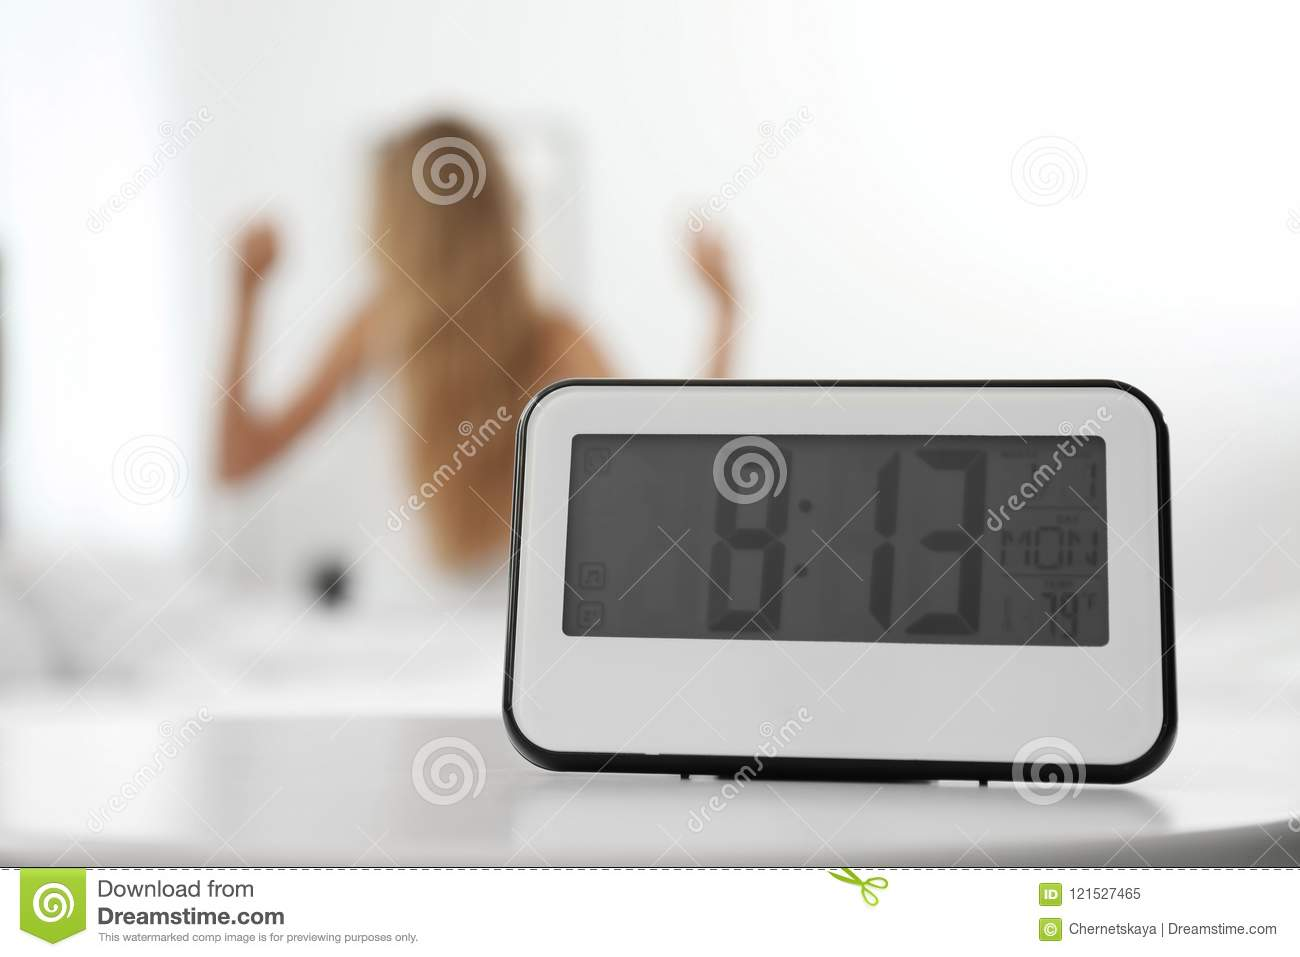 Digital Alarm Clock And Blurred Woman Stock Image - Image of